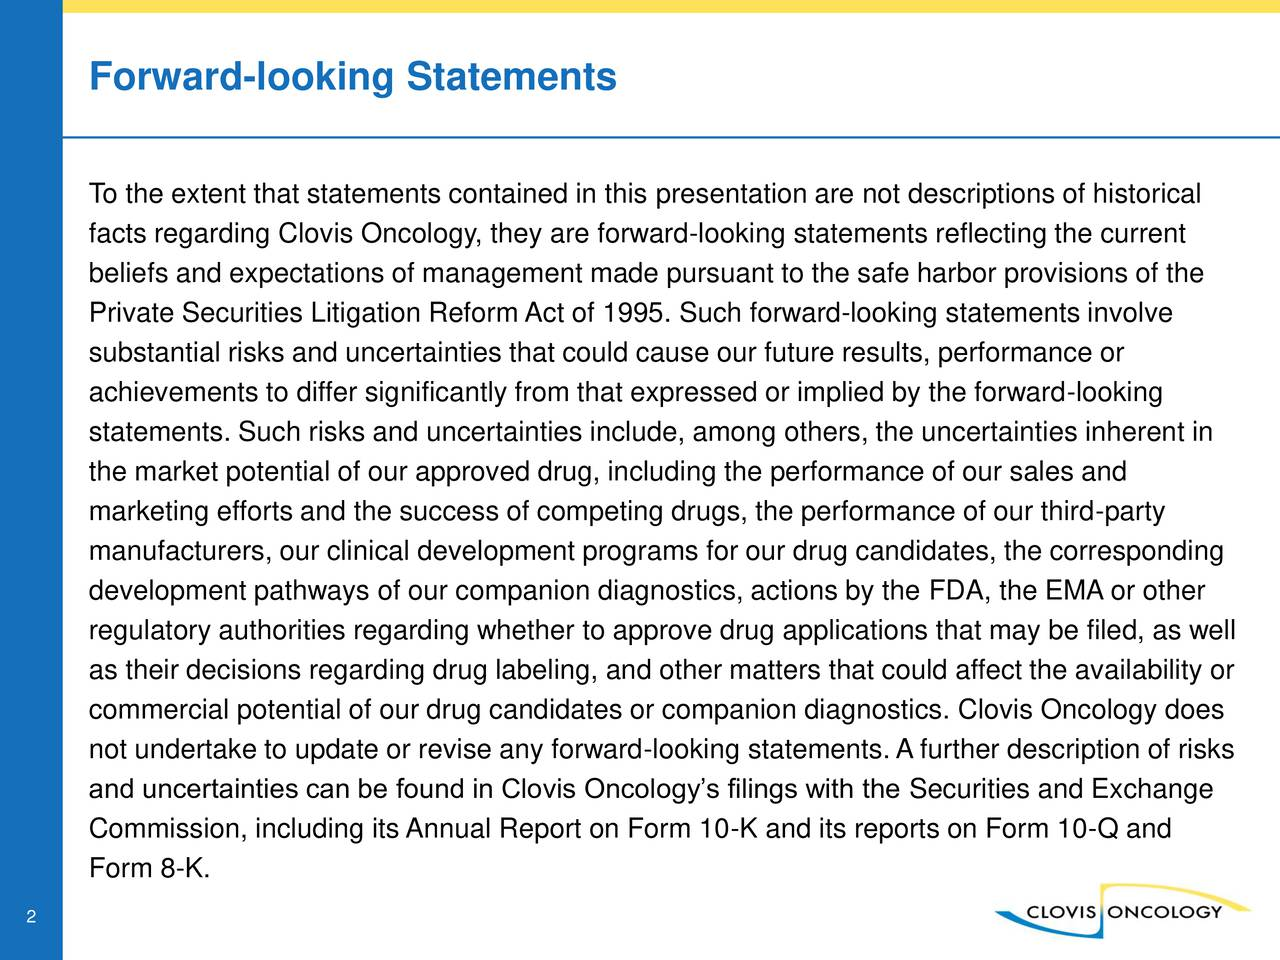 To the extent that statements contained in this presentation are not descriptions of historical facts regarding Clovis Oncology, they are forward-looking statements reflecting the current beliefs and expectations of management made pursuant to the safe harbor provisions of the Private Securities Litigation Reform Act of 1995. Such forward-looking statements involve substantial risks and uncertainties that could cause our future results, performance or achievements to differ significantly from that expressed or implied by the forward-looking statements. Such risks and uncertainties include, among others, the uncertainties inherent in the market potential of our approved drug, including the performance of our sales and marketing efforts and the success of competing drugs, the performance of our third-party manufacturers, our clinical development programs for our drug candidates, the corresponding development pathways of our companion diagnostics, actions by the FDA, the EMA or other regulatory authorities regarding whether to approve drug applications that may be filed, as well as their decisions regarding drug labeling, and other matters that could affect the availability or commercial potential of our drug candidates or companion diagnostics. Clovis Oncology does not undertake to update or revise any forward-looking statements. A further description of risks and uncertainties can be found in Clovis Oncologys filings with the Securities and Exchange Commission, including its Annual Report on Form 10-K and its reports on Form 10-Q and Form 8-K. 2